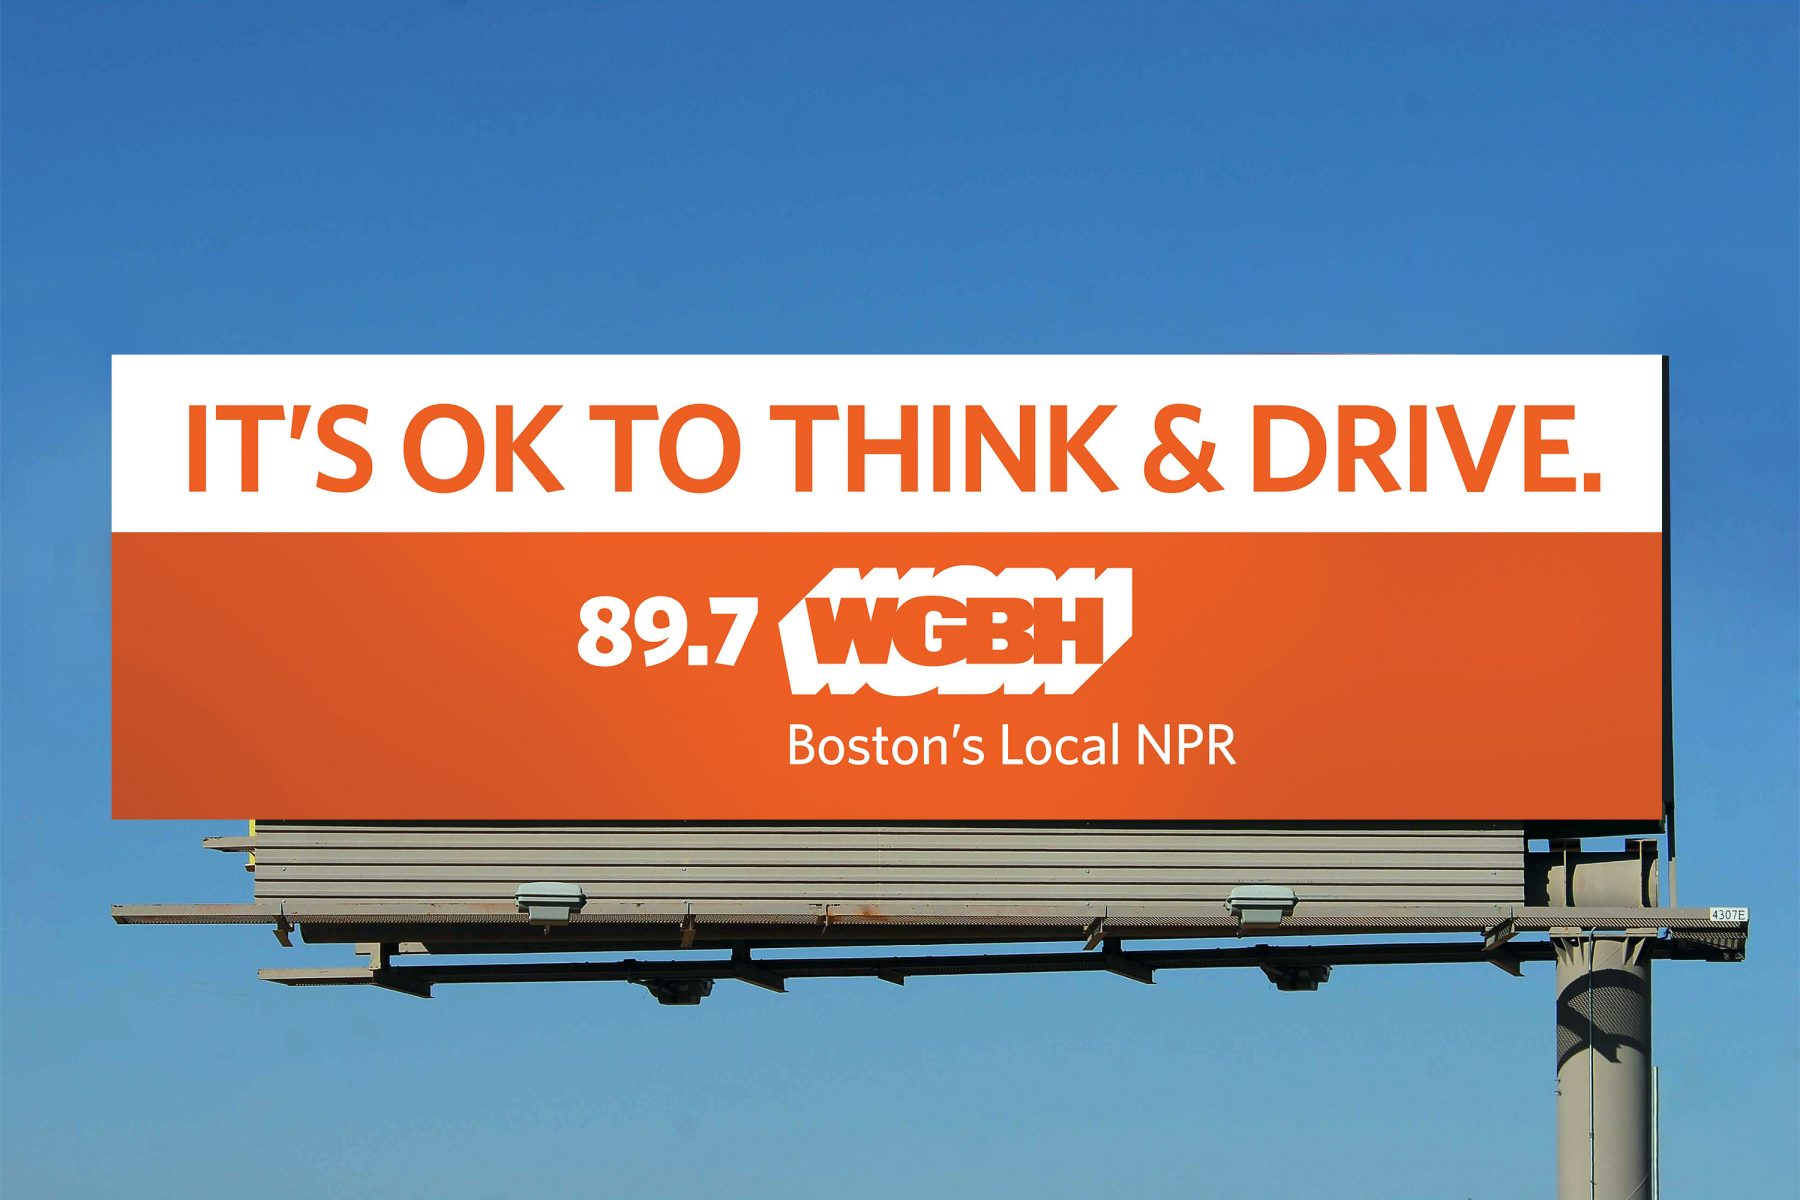 WGBH Billboard: It's OK to think & Drive.